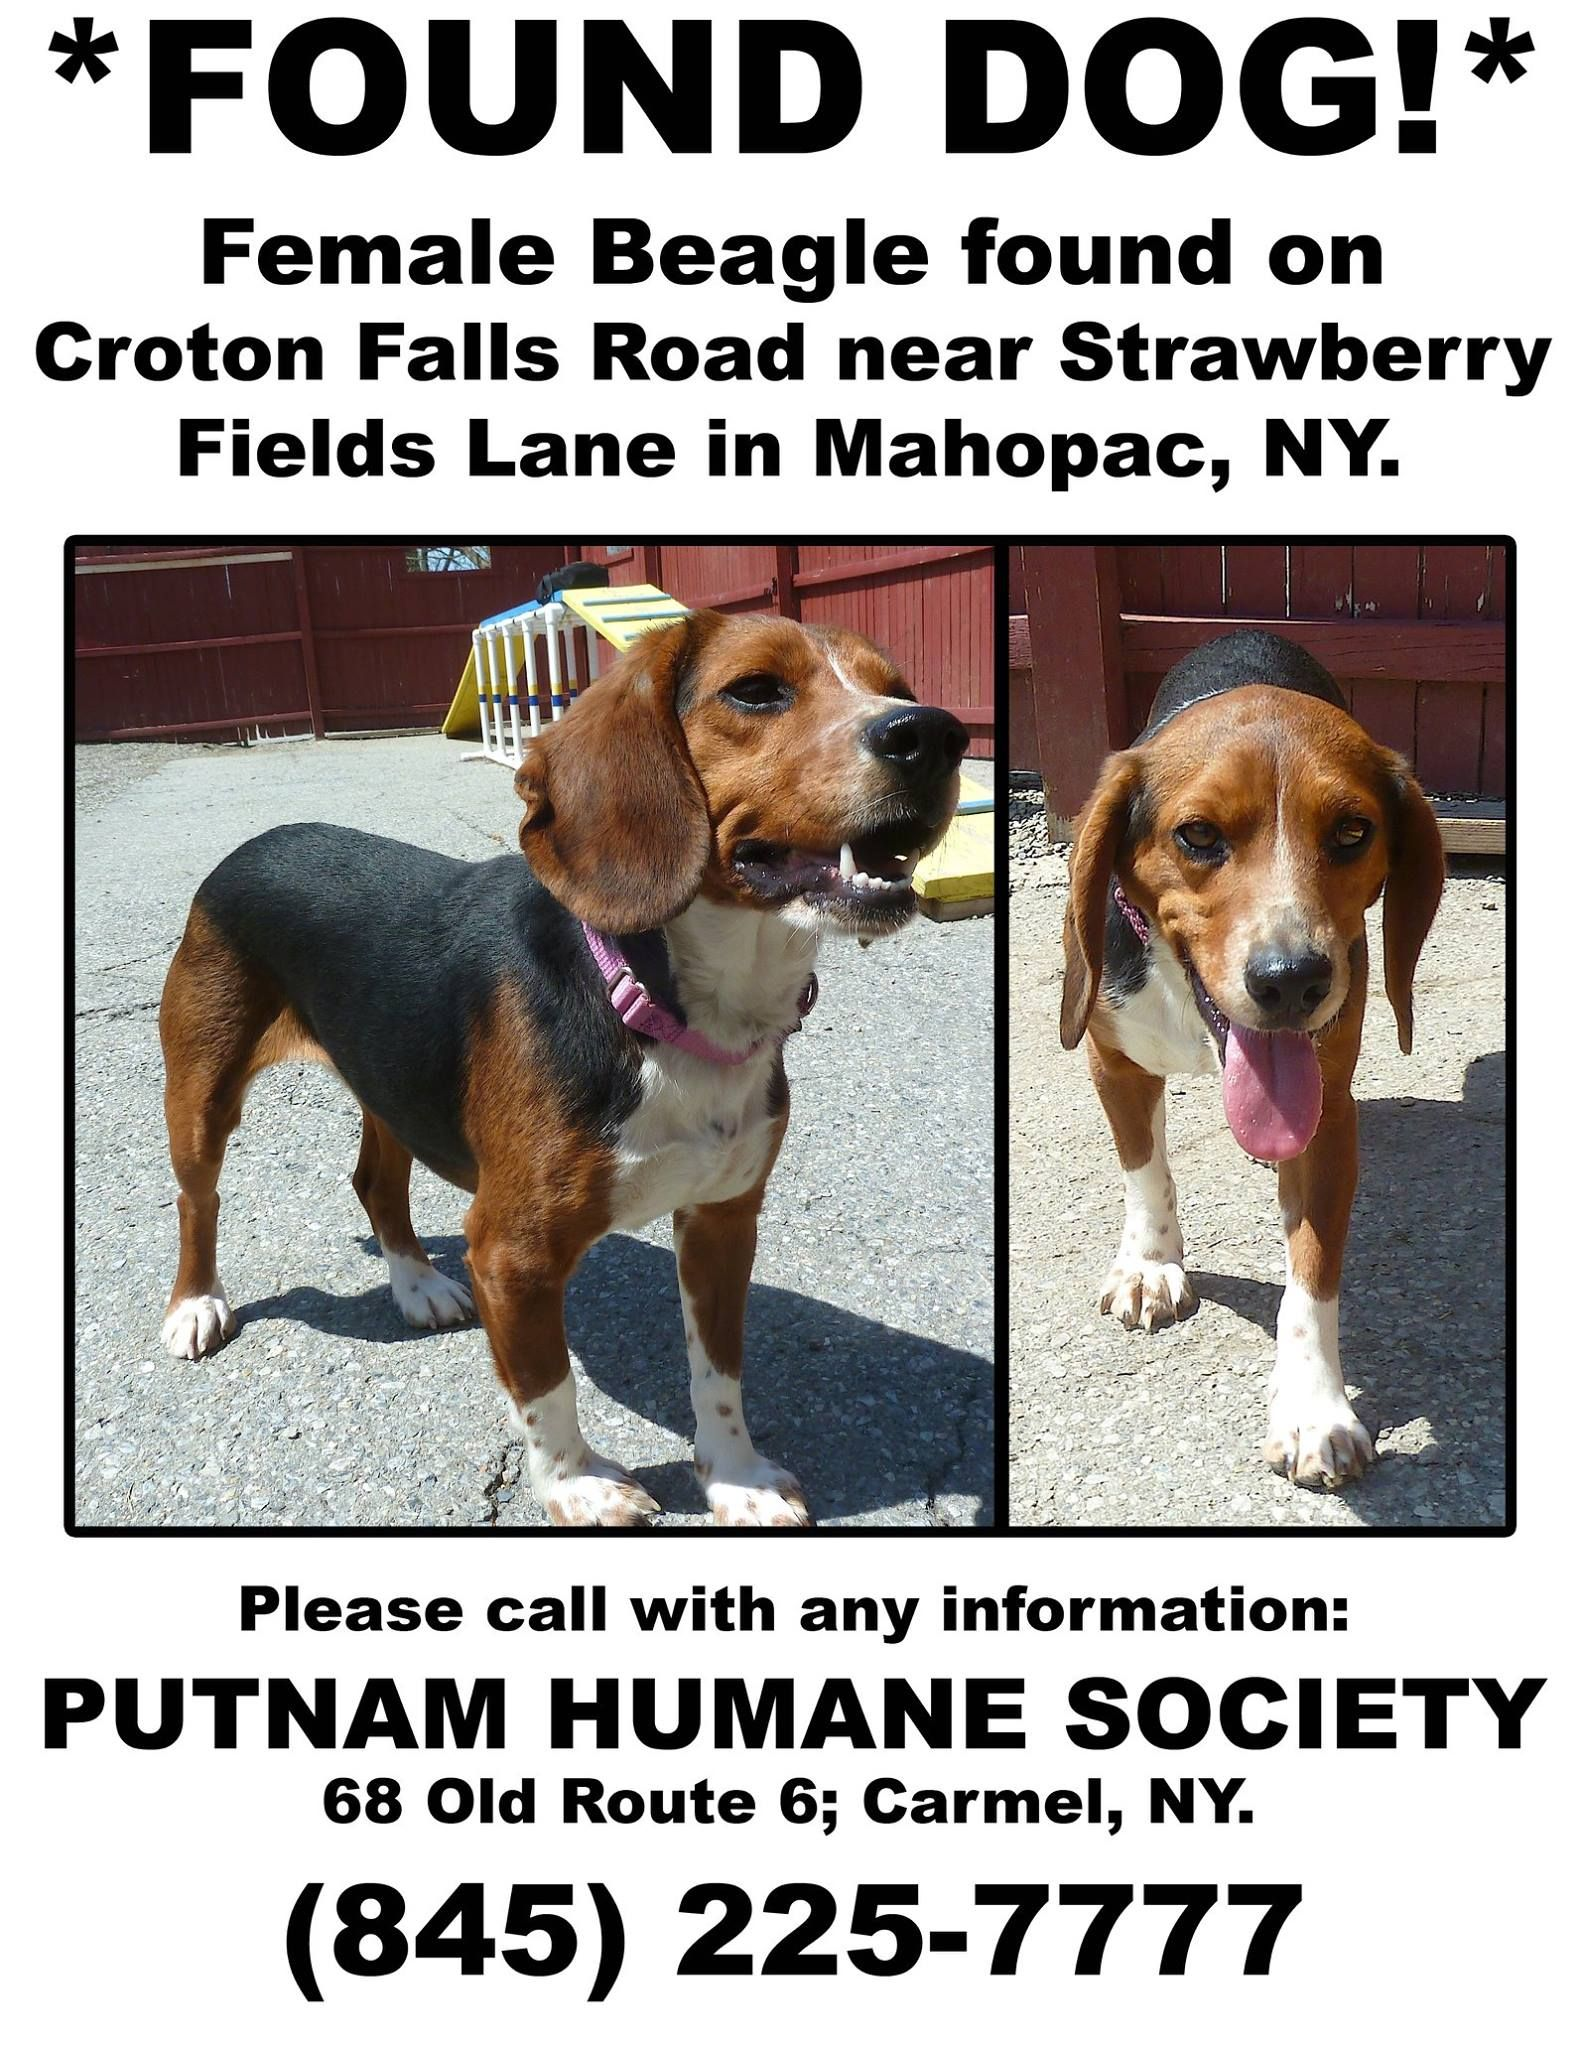 Putnam Humane Society May 4 Edited Found Dog No One Has